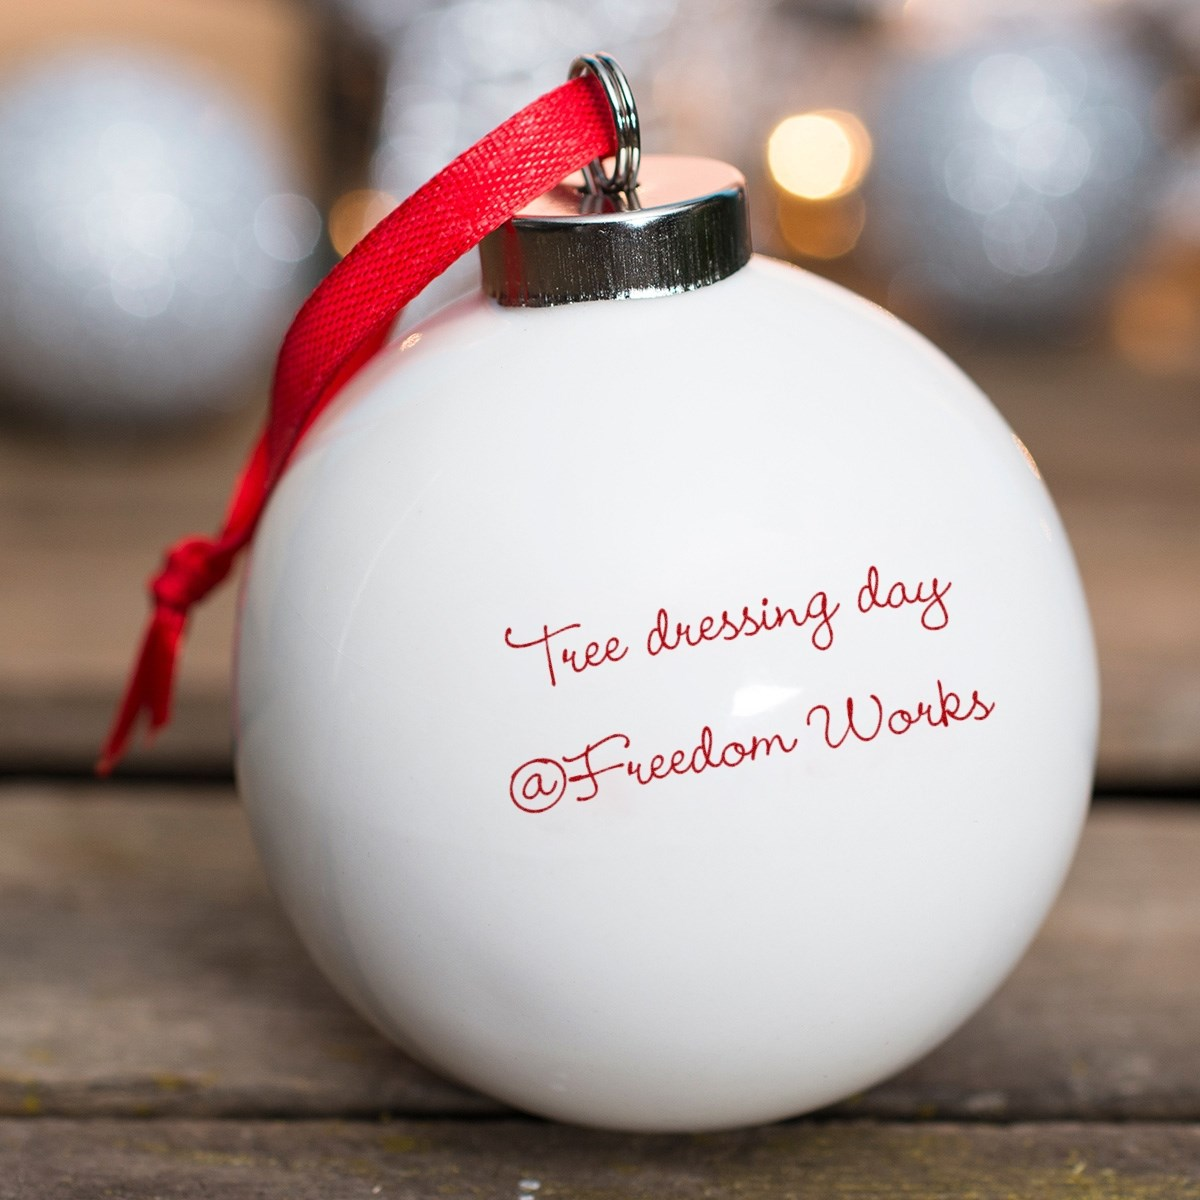 christmas tree dressing day 2017 freedom works